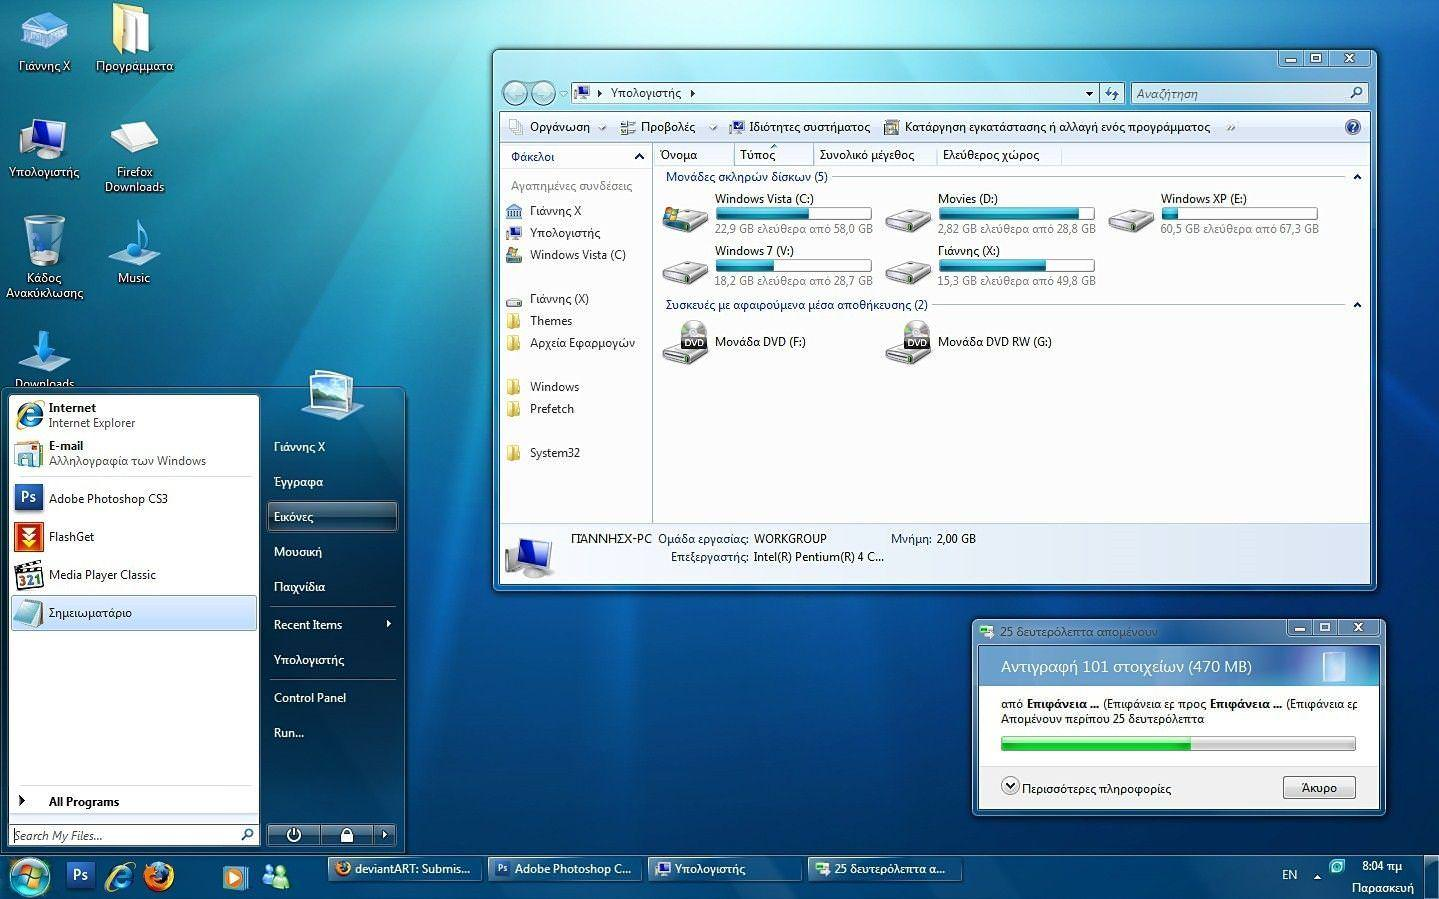 windows 7 professional 64 bit trial version download iso